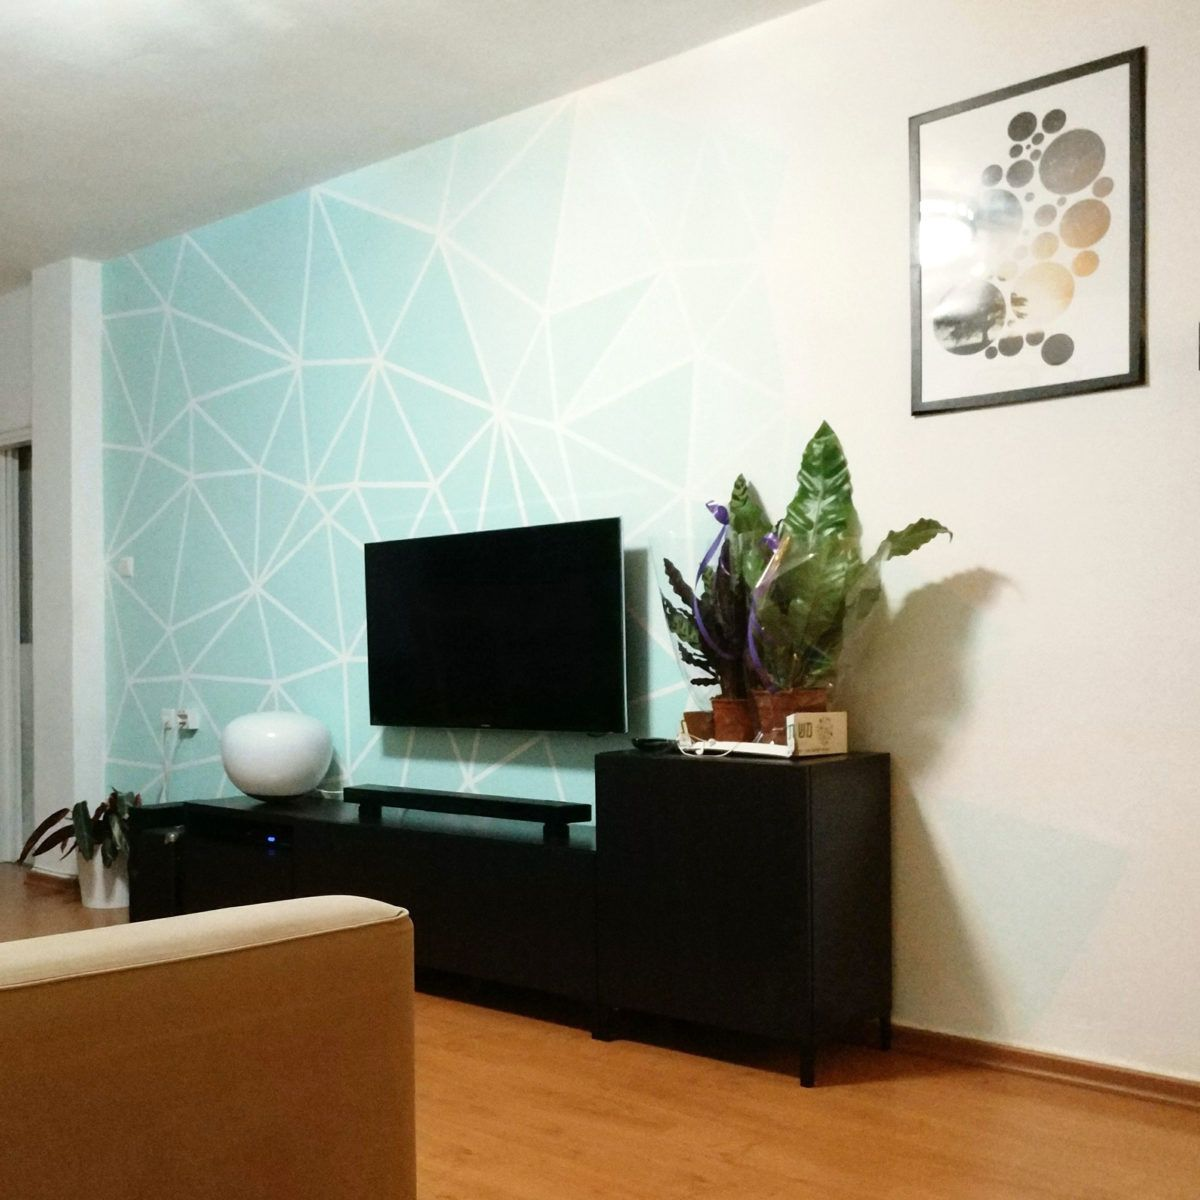 Accent Wall Living Room Faux Suede Paint: DIY Faux Wallpaper Home Decor Accent Wall